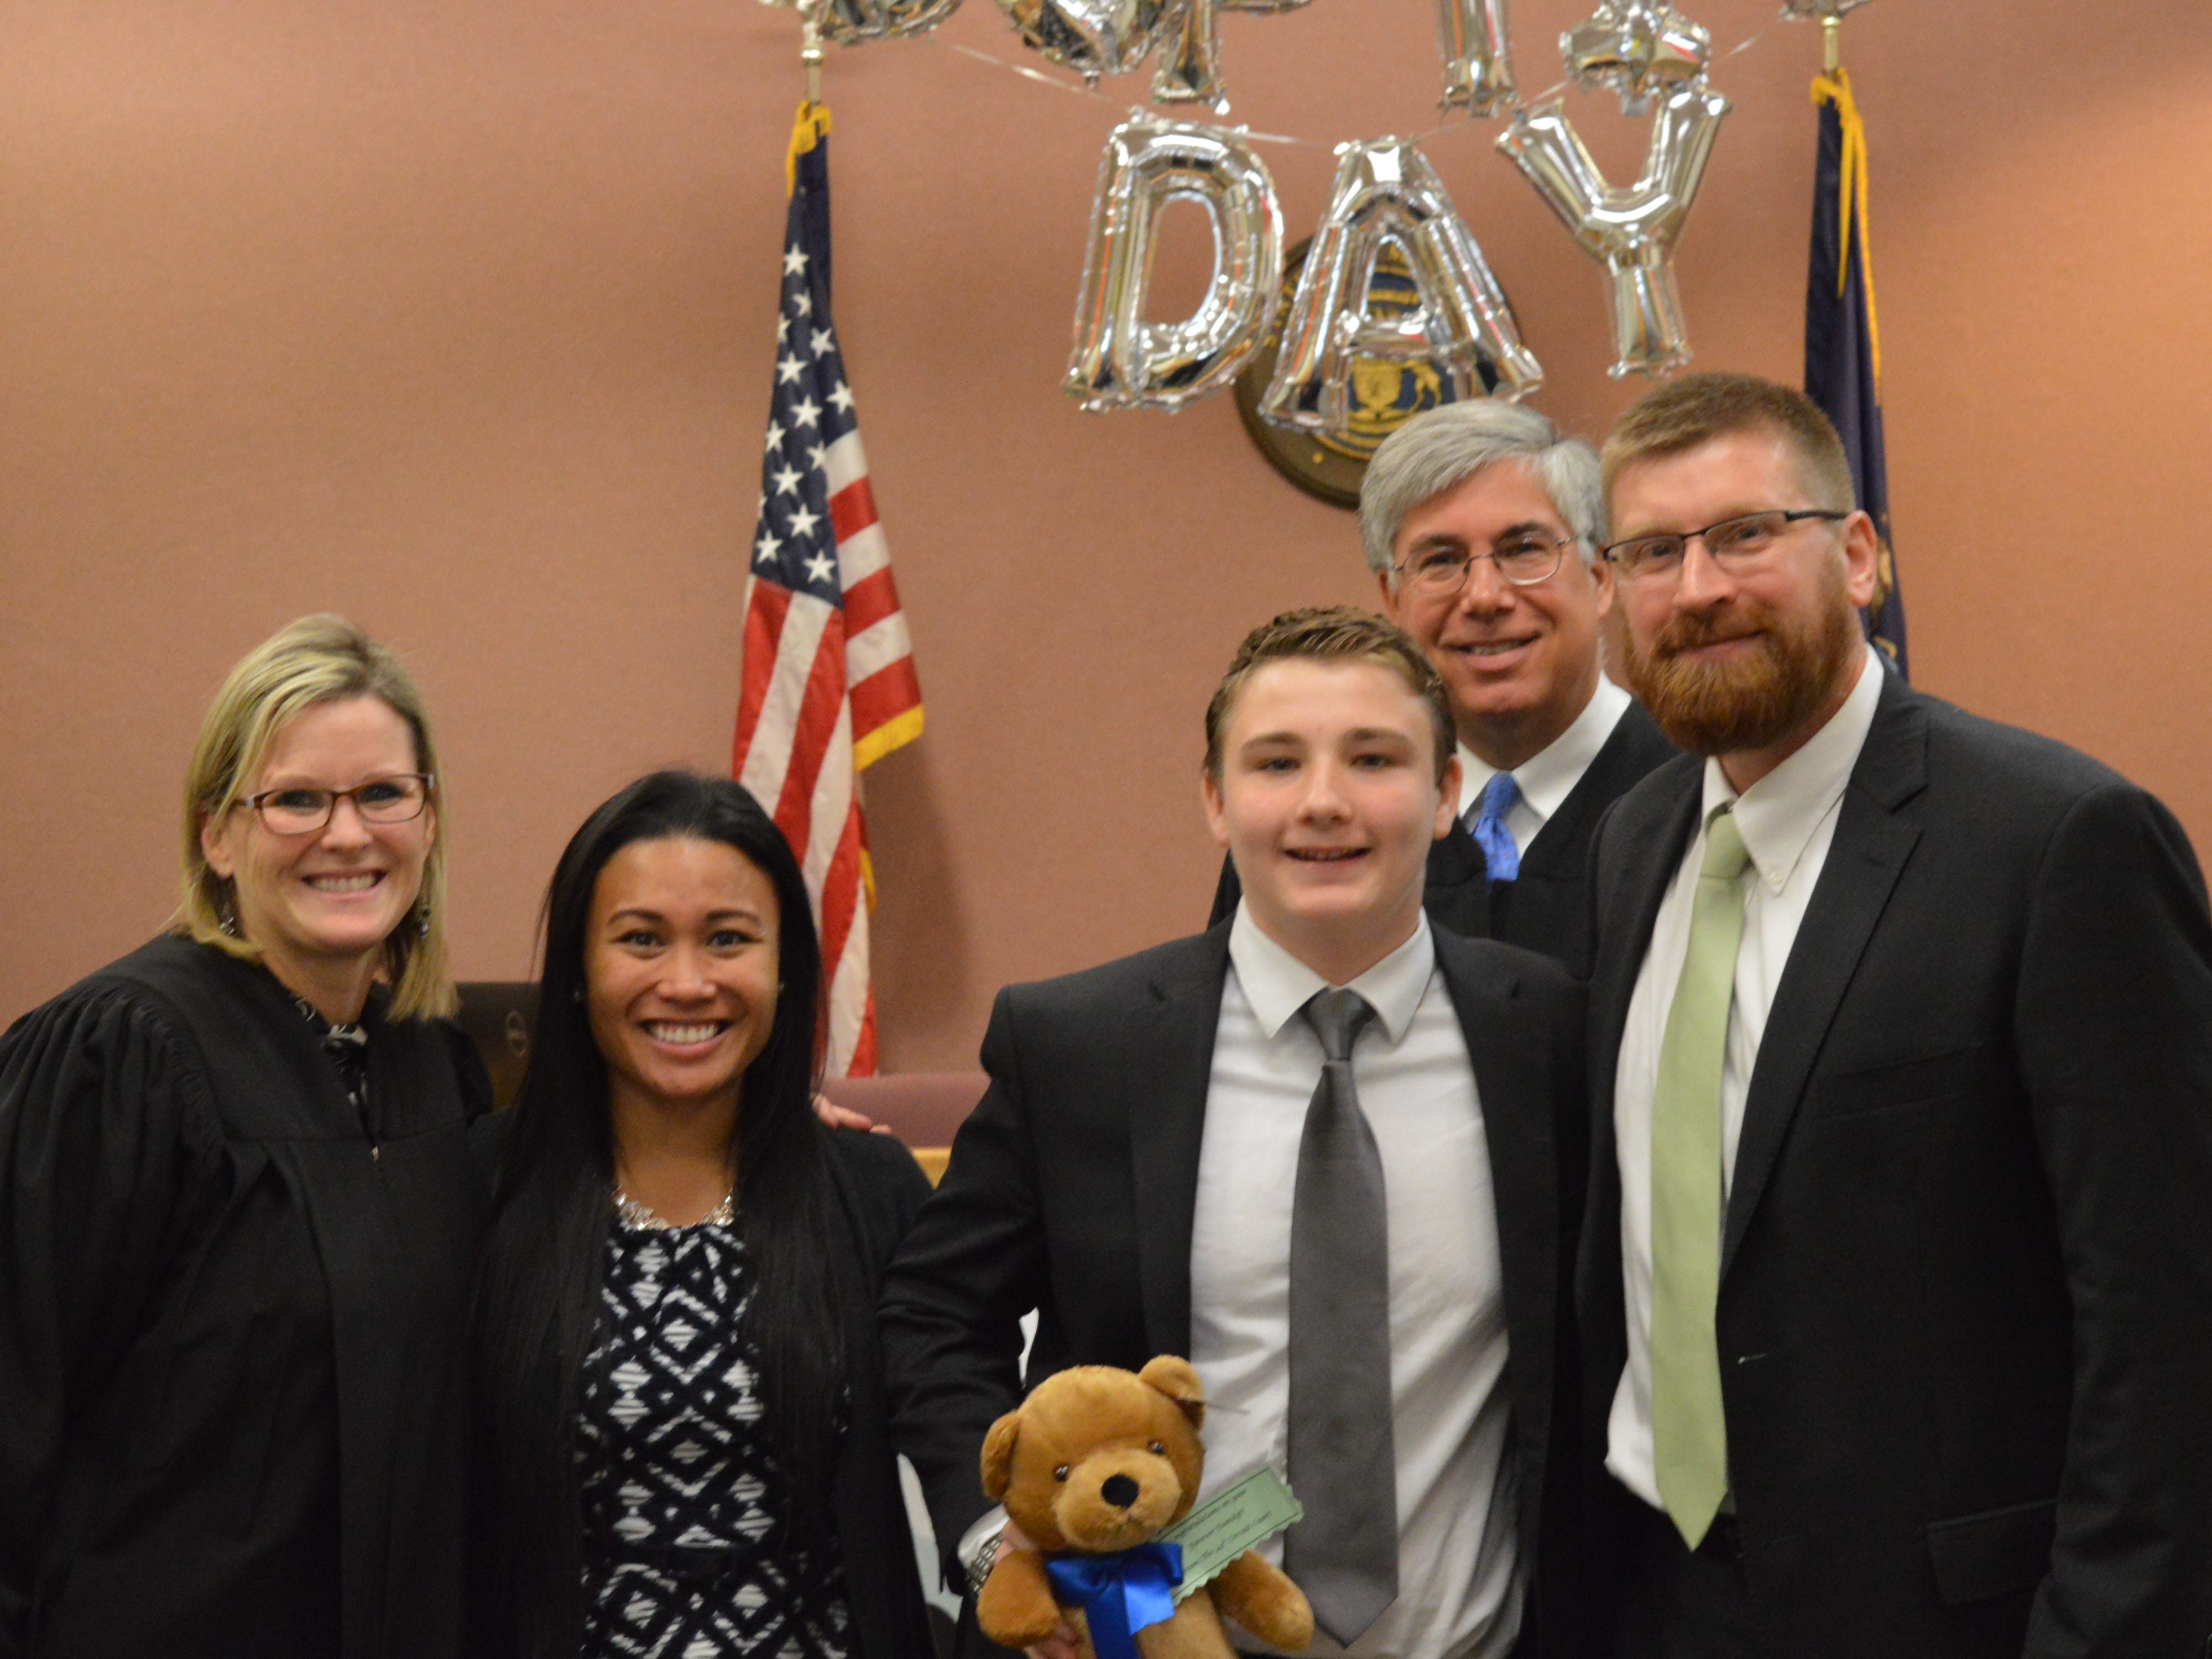 Maris and Stephen Wallage pose with their newly adopted son Luke as well as Livingston County Chief Judge Miriam Cavanaugh and Michigan Court of Appeals Judge Christopher Murray. His adoption was finalized on Nov. 20, 2018.